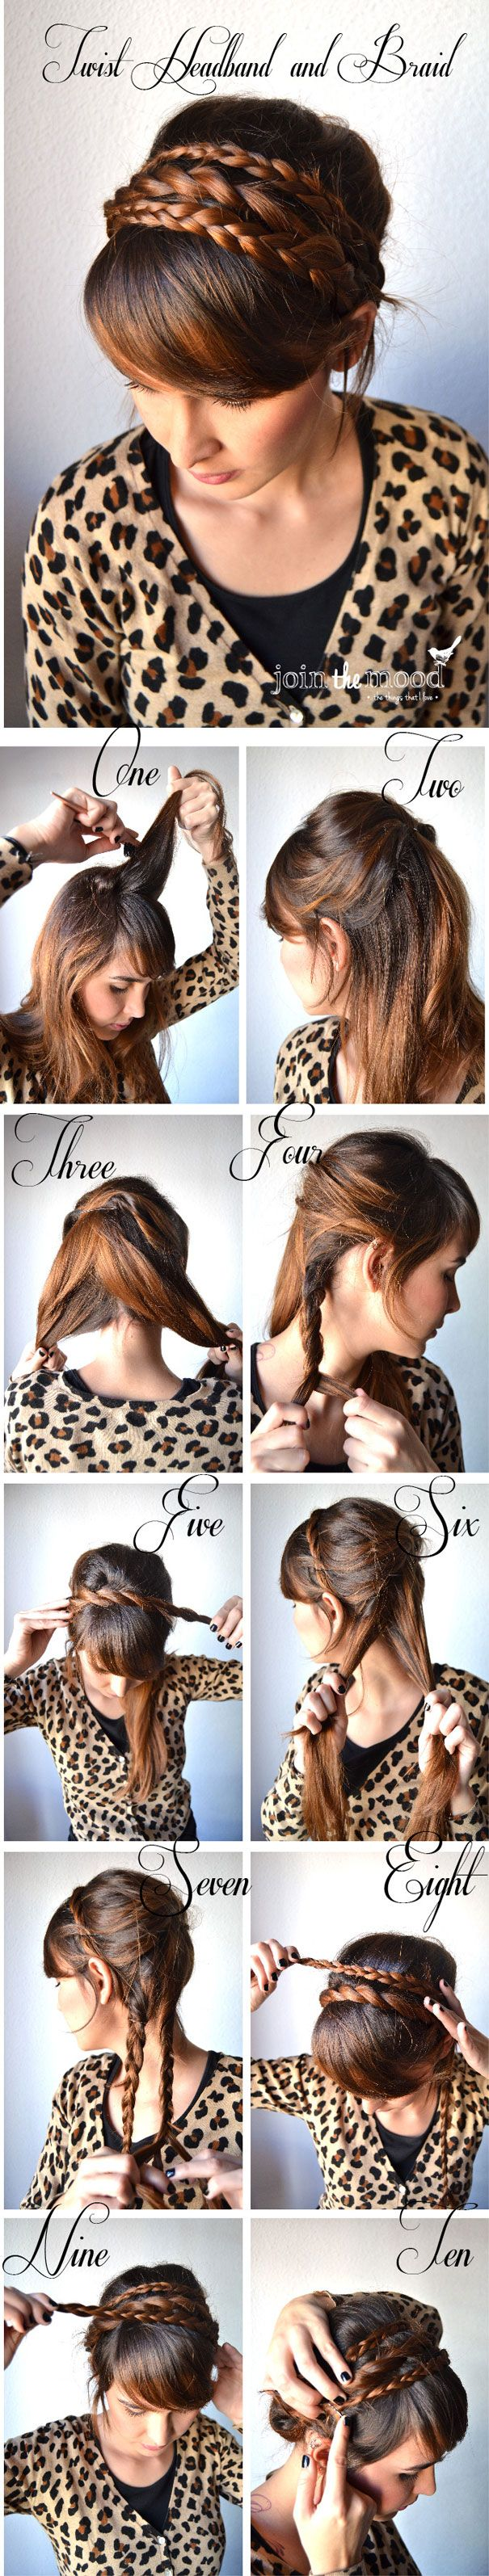 Twist Headband and Braid | Join the mood #hair #braid #tutorial